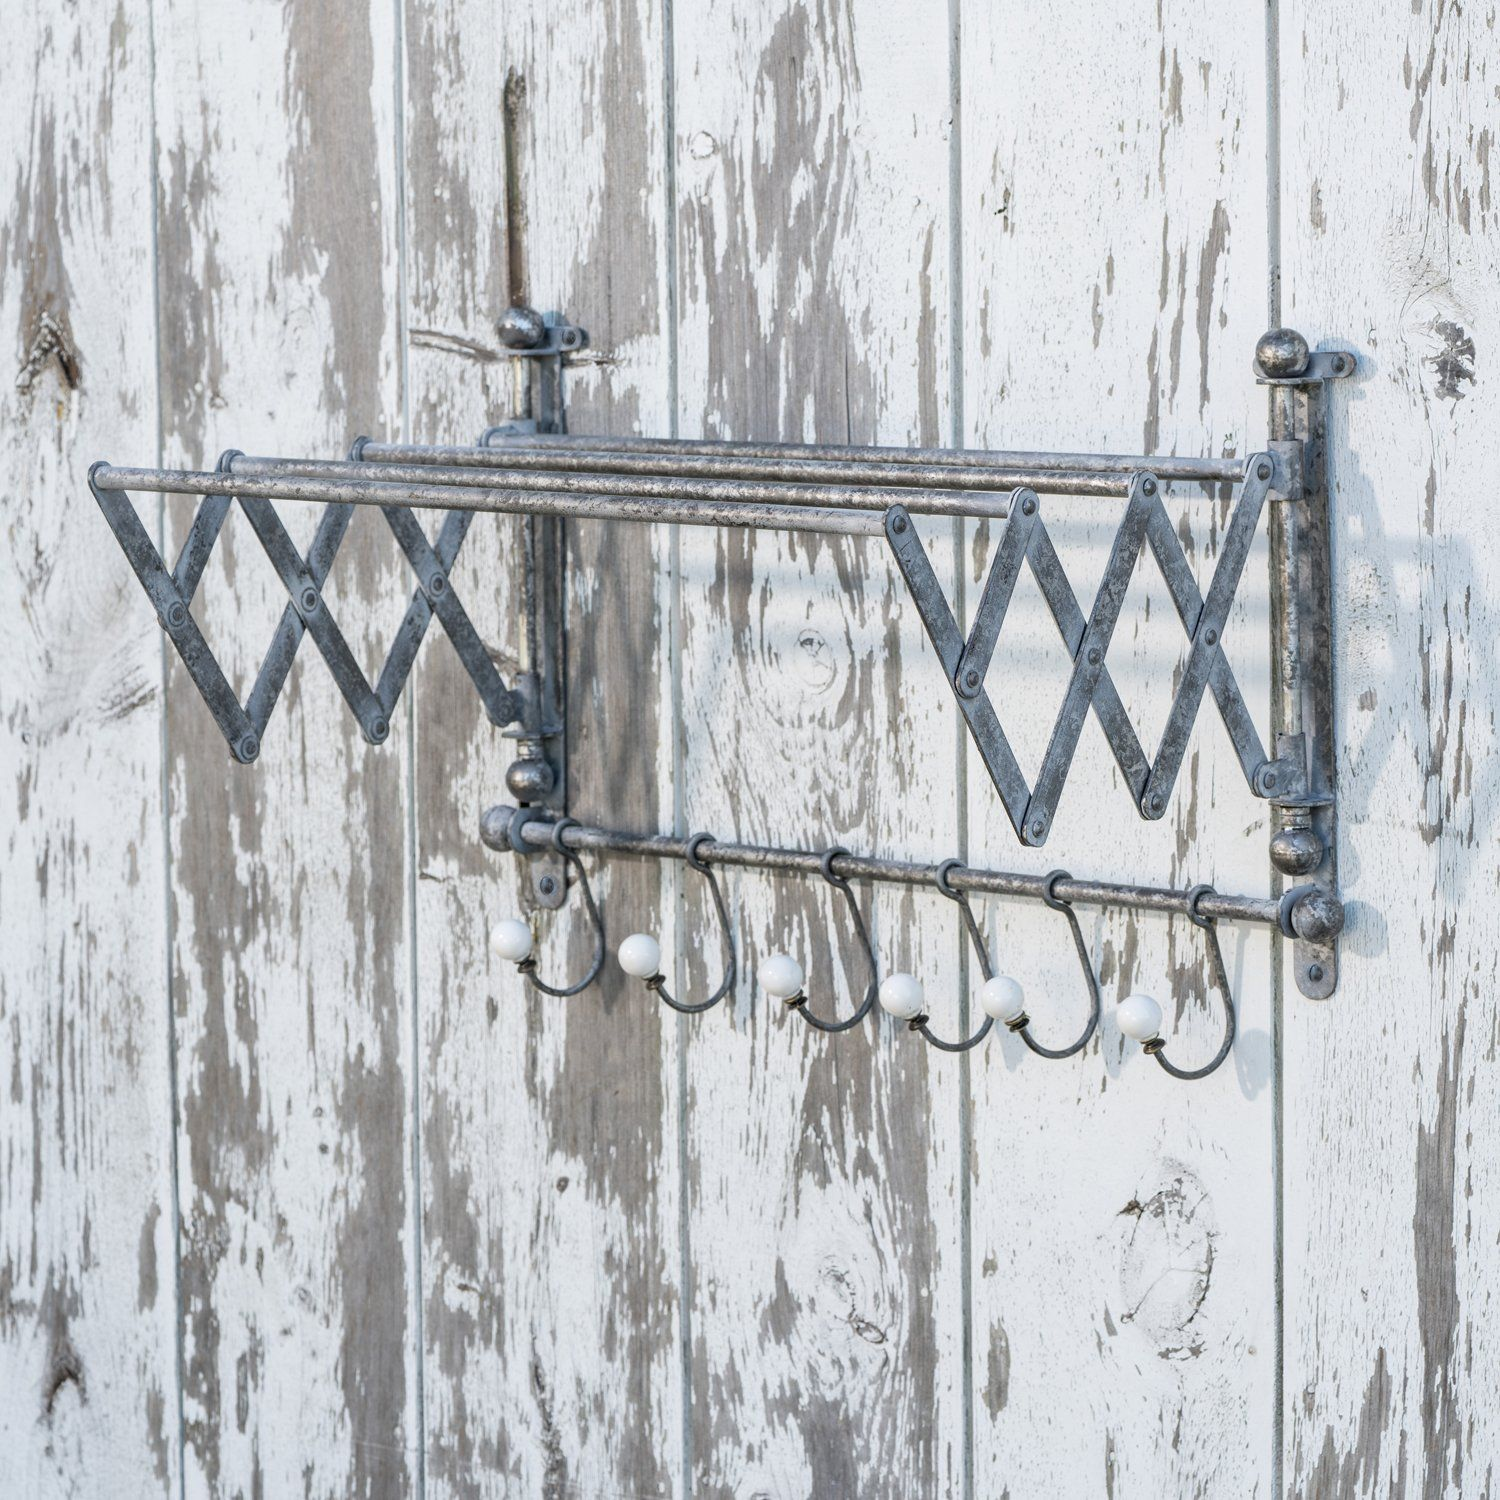 Vintage metal clothes drying rack with hooks clothes drying racks